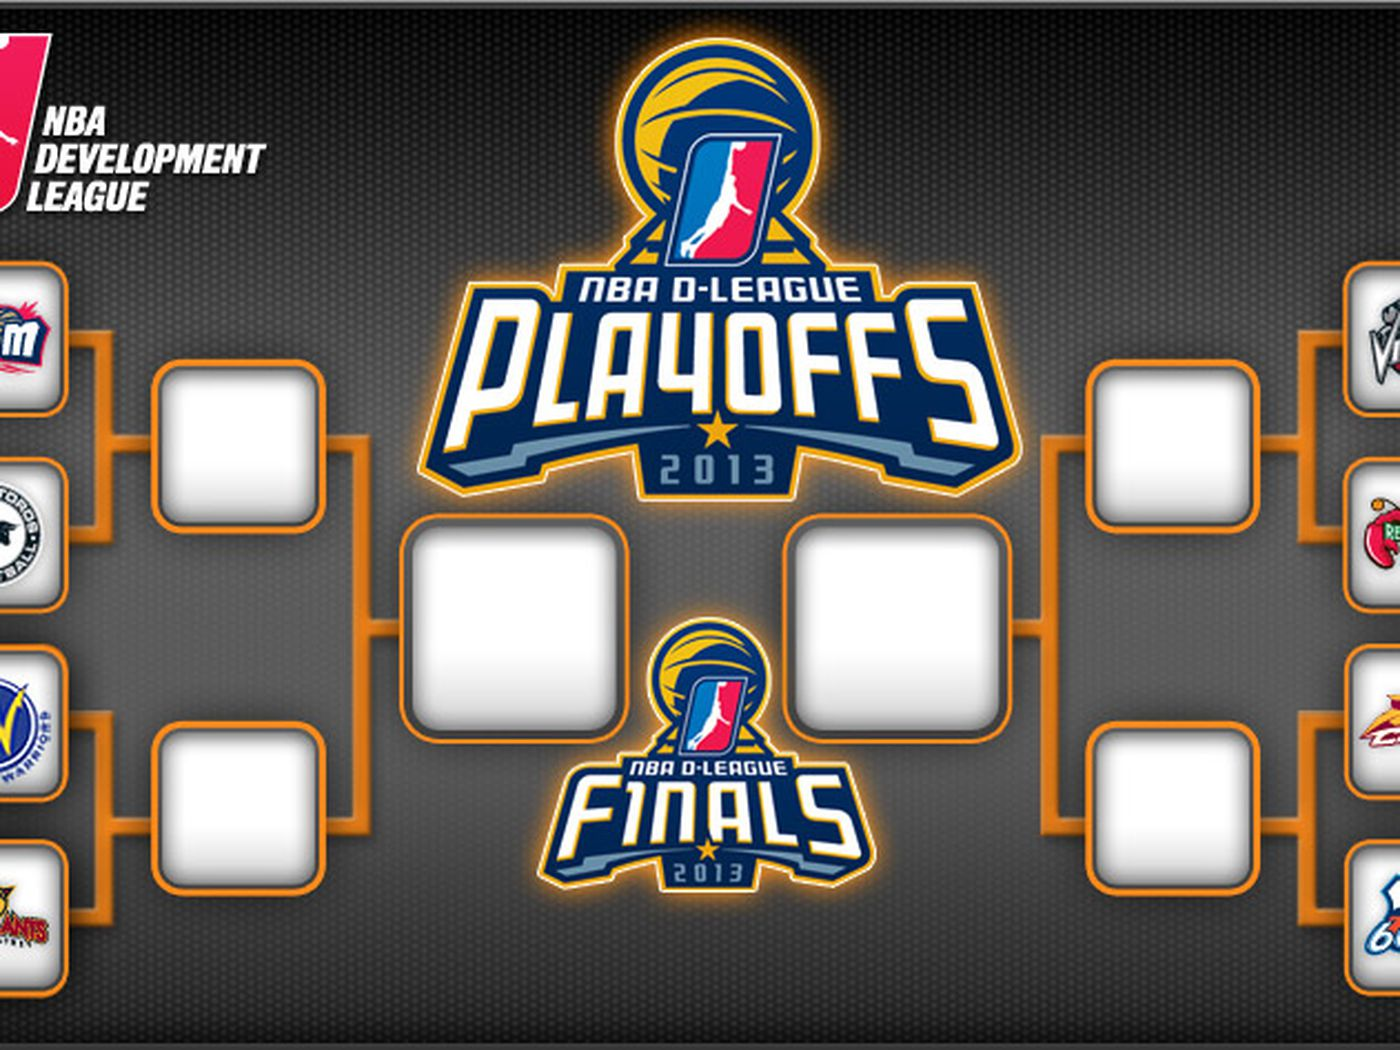 Final Four Nba D League Playoff Teams Epitomize The Nbadl S Current Role Ridiculous Upside